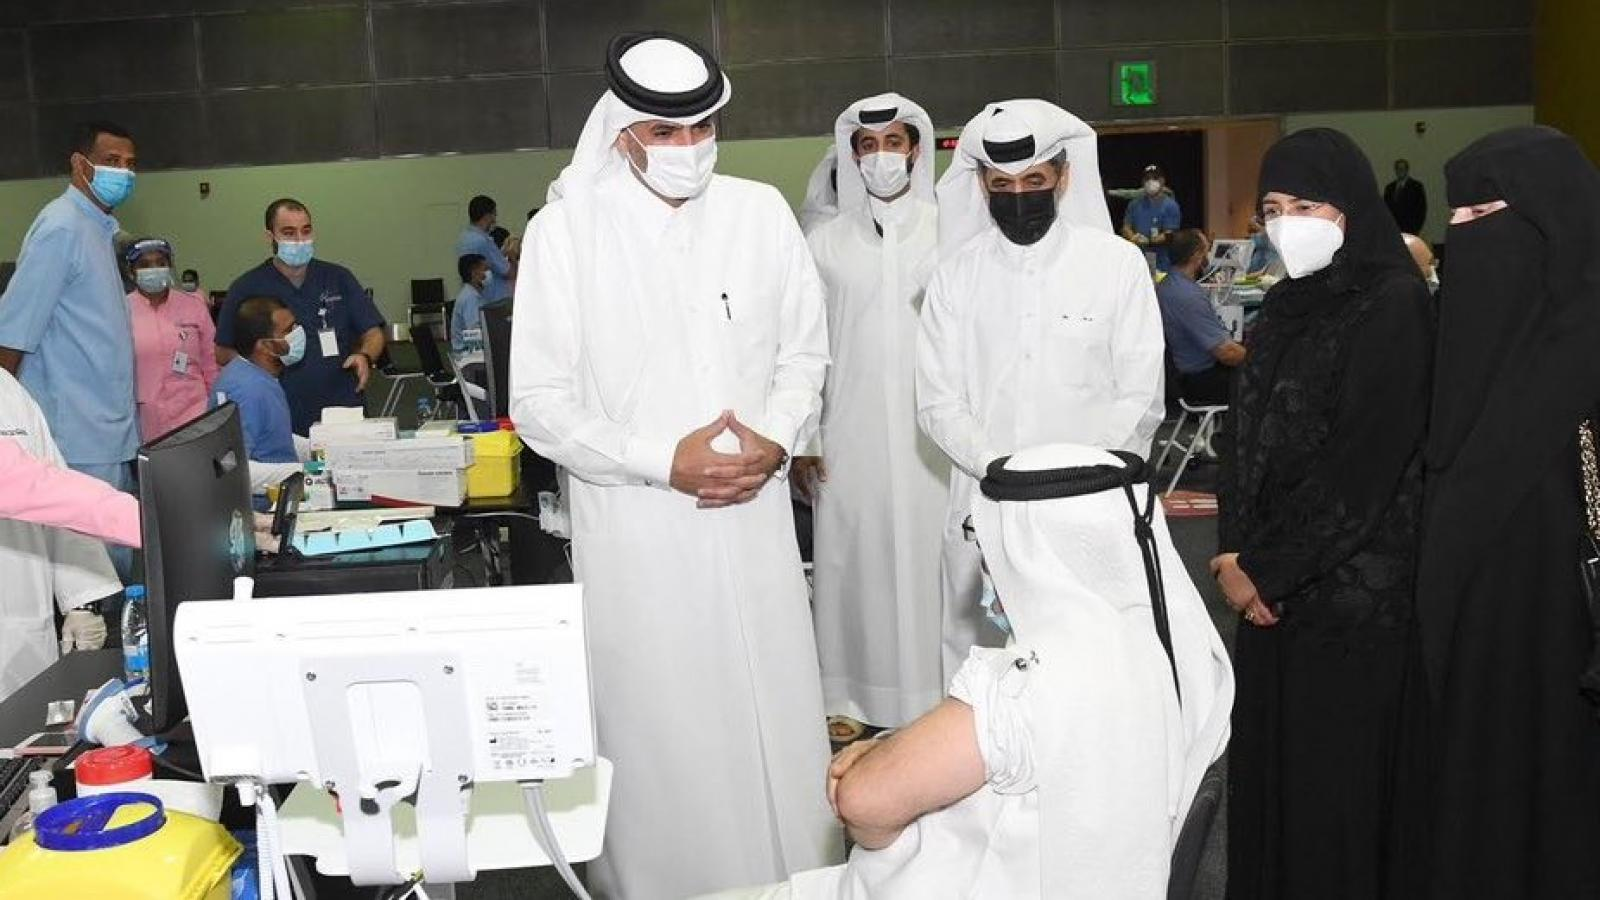 MoPH explains procedure for COVID-19 vaccination at QNCC